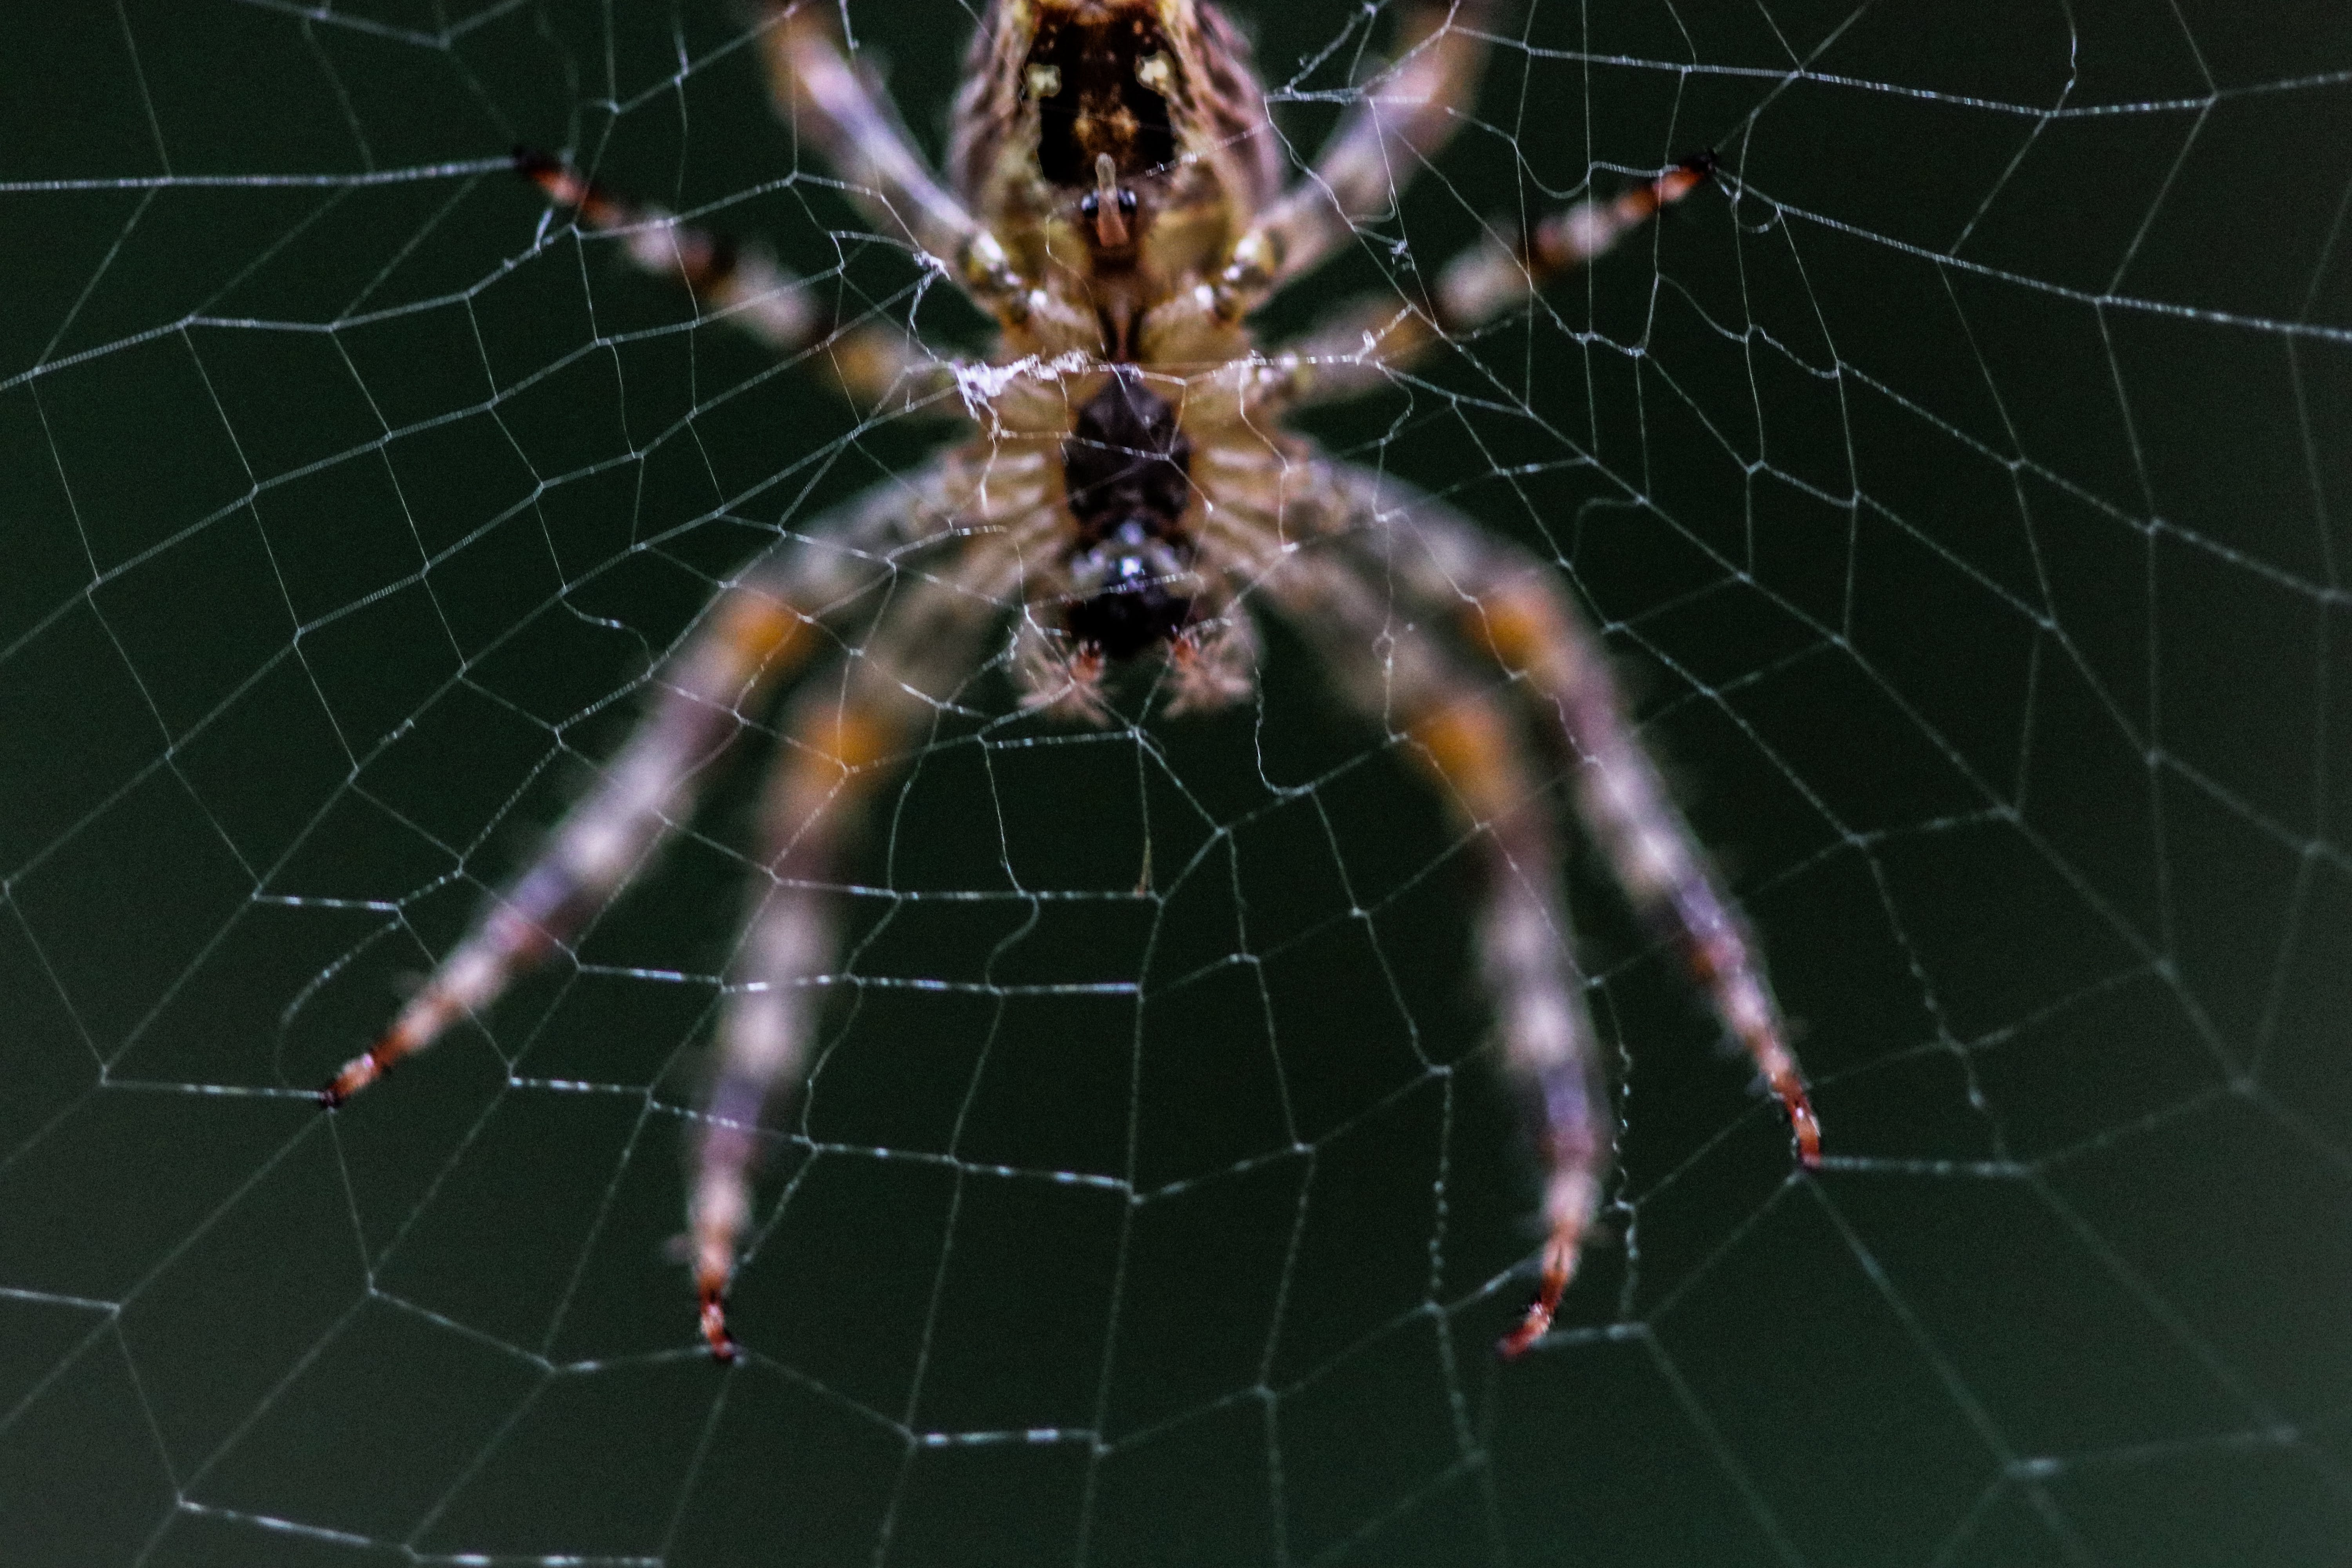 Close-up Selective Focus Photography of Barn Spider on Web